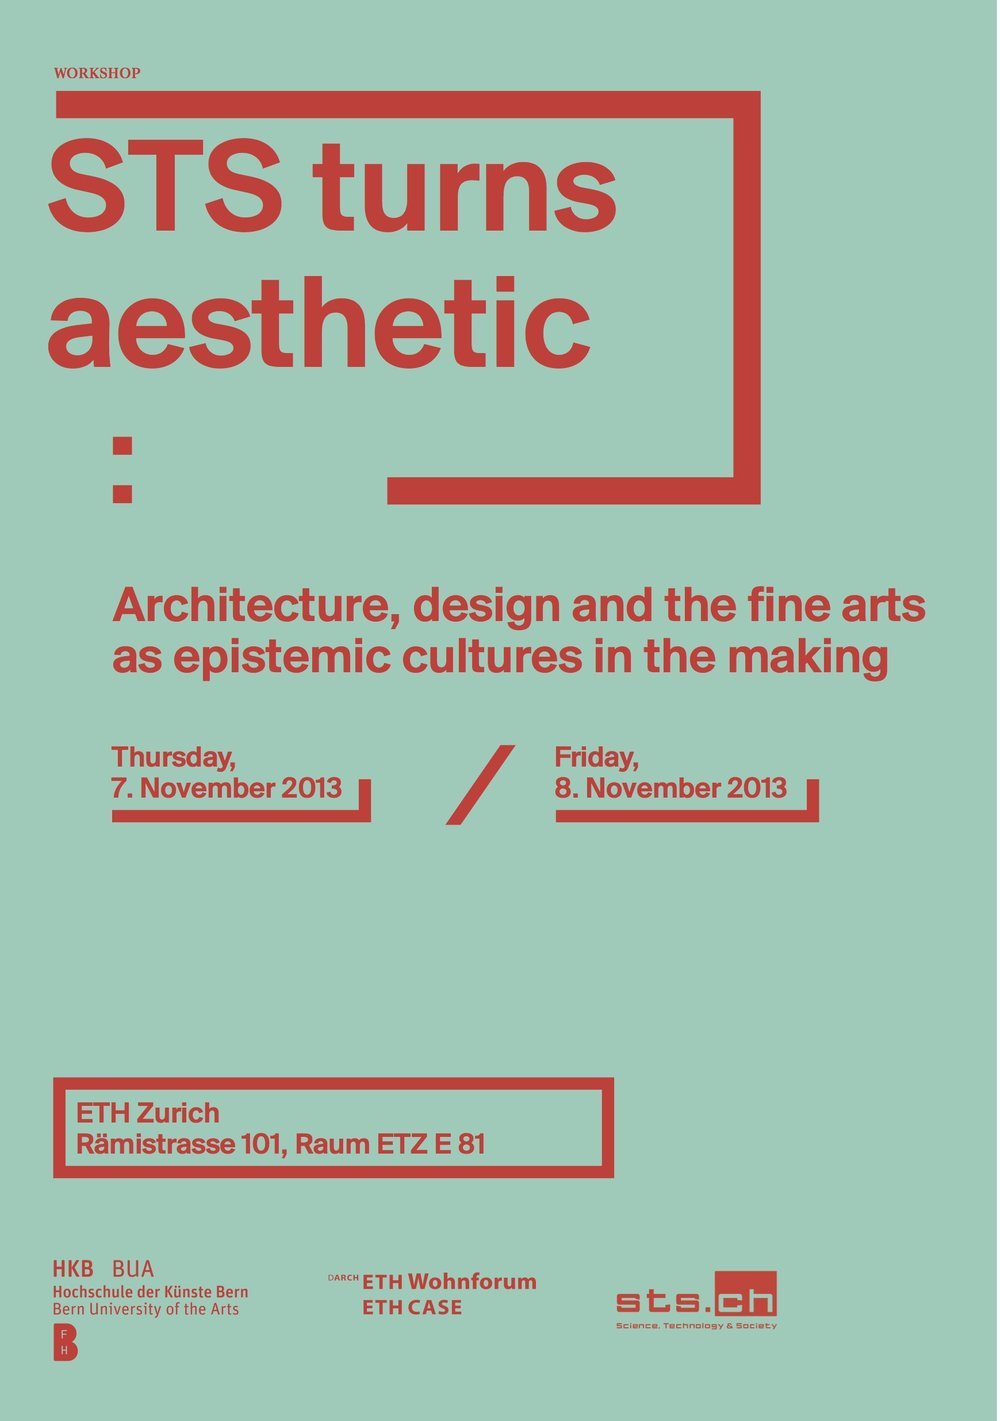 STS turns aesthetic Workshop -